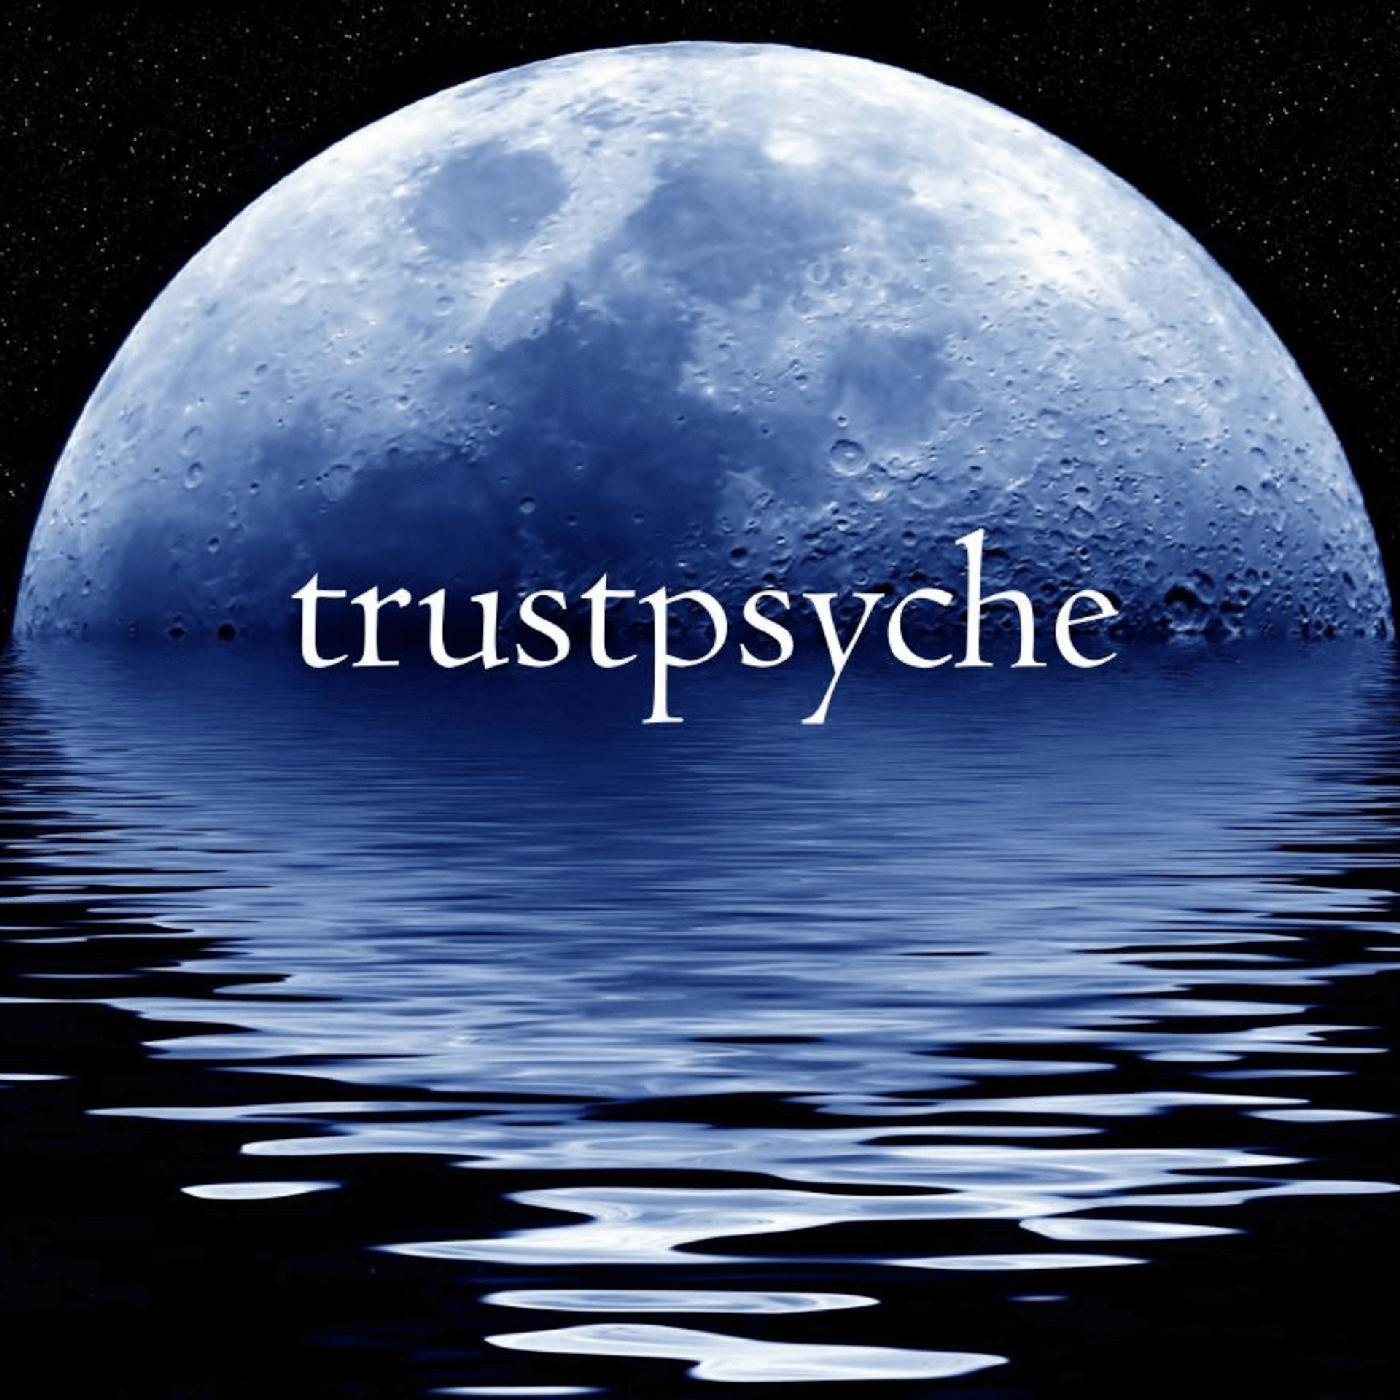 Stream: Trustpsyche Astrology and Psychology Podcast